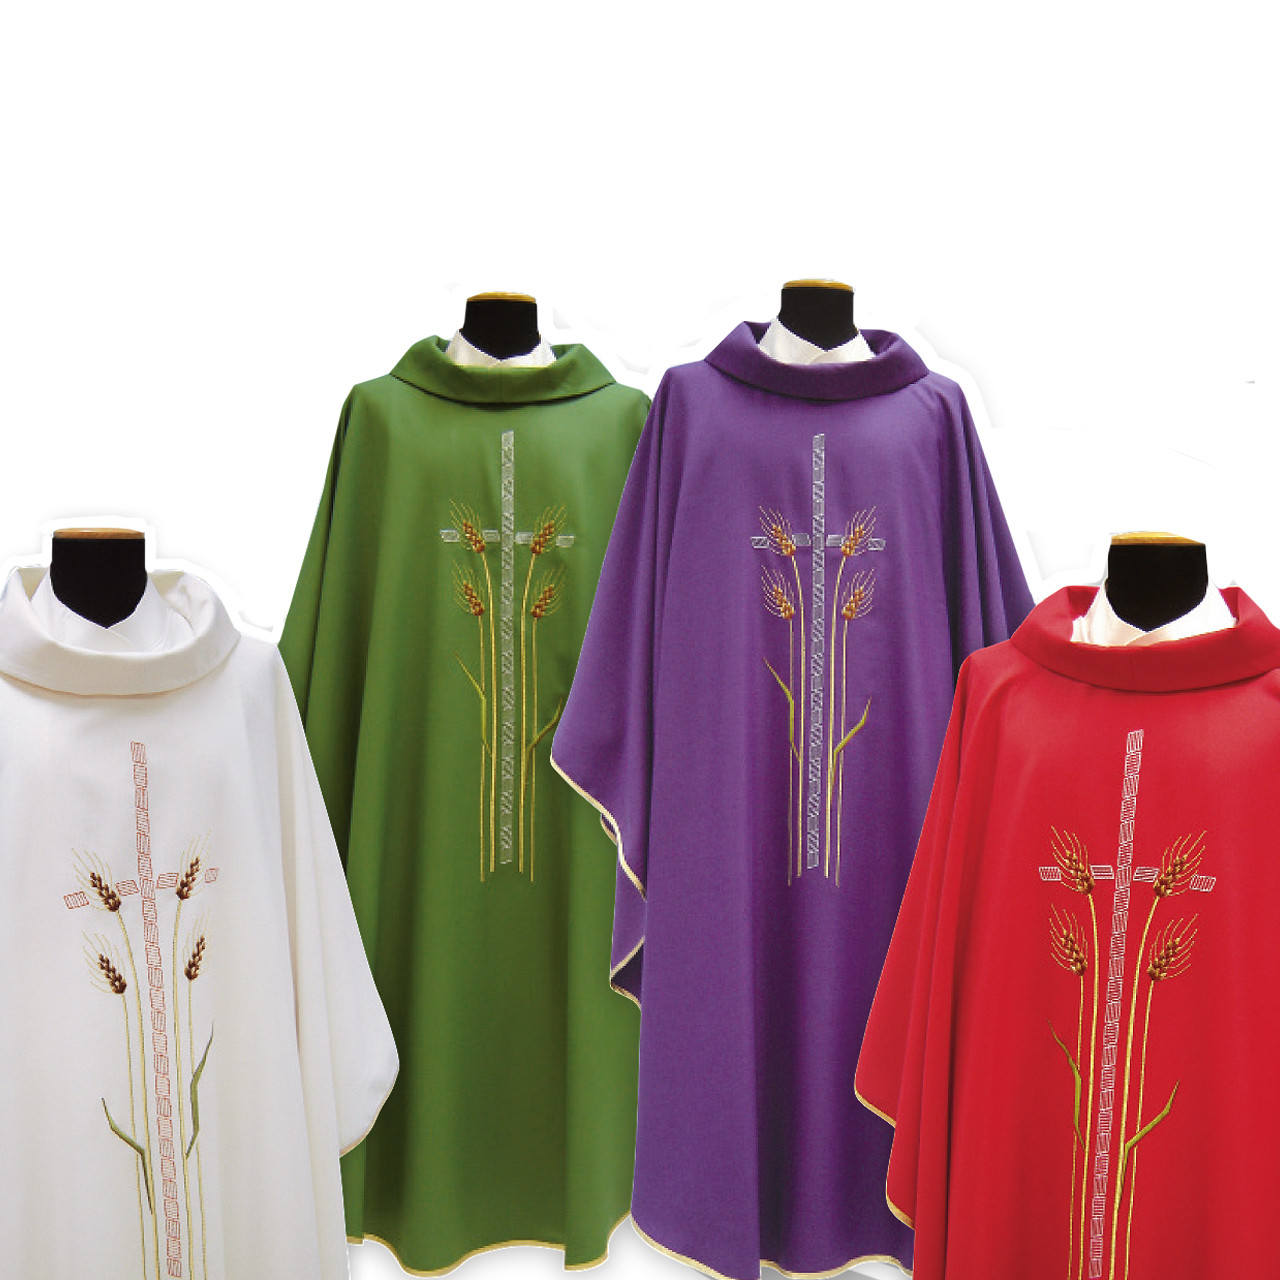 812 Chasuble in Poly/Wool from Solivari